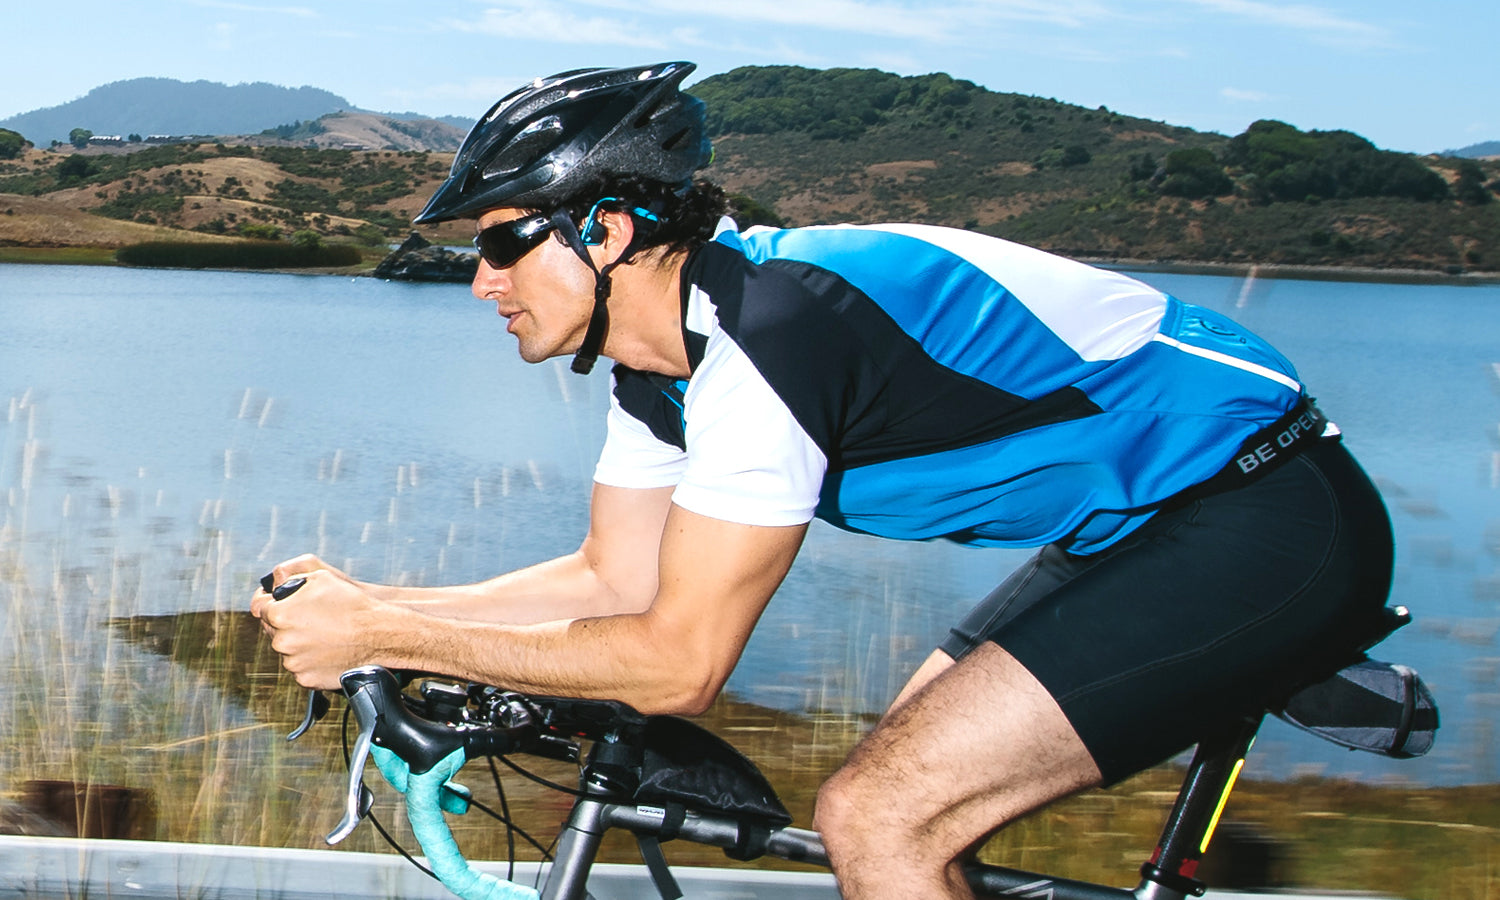 How To Be A Safer Cyclist